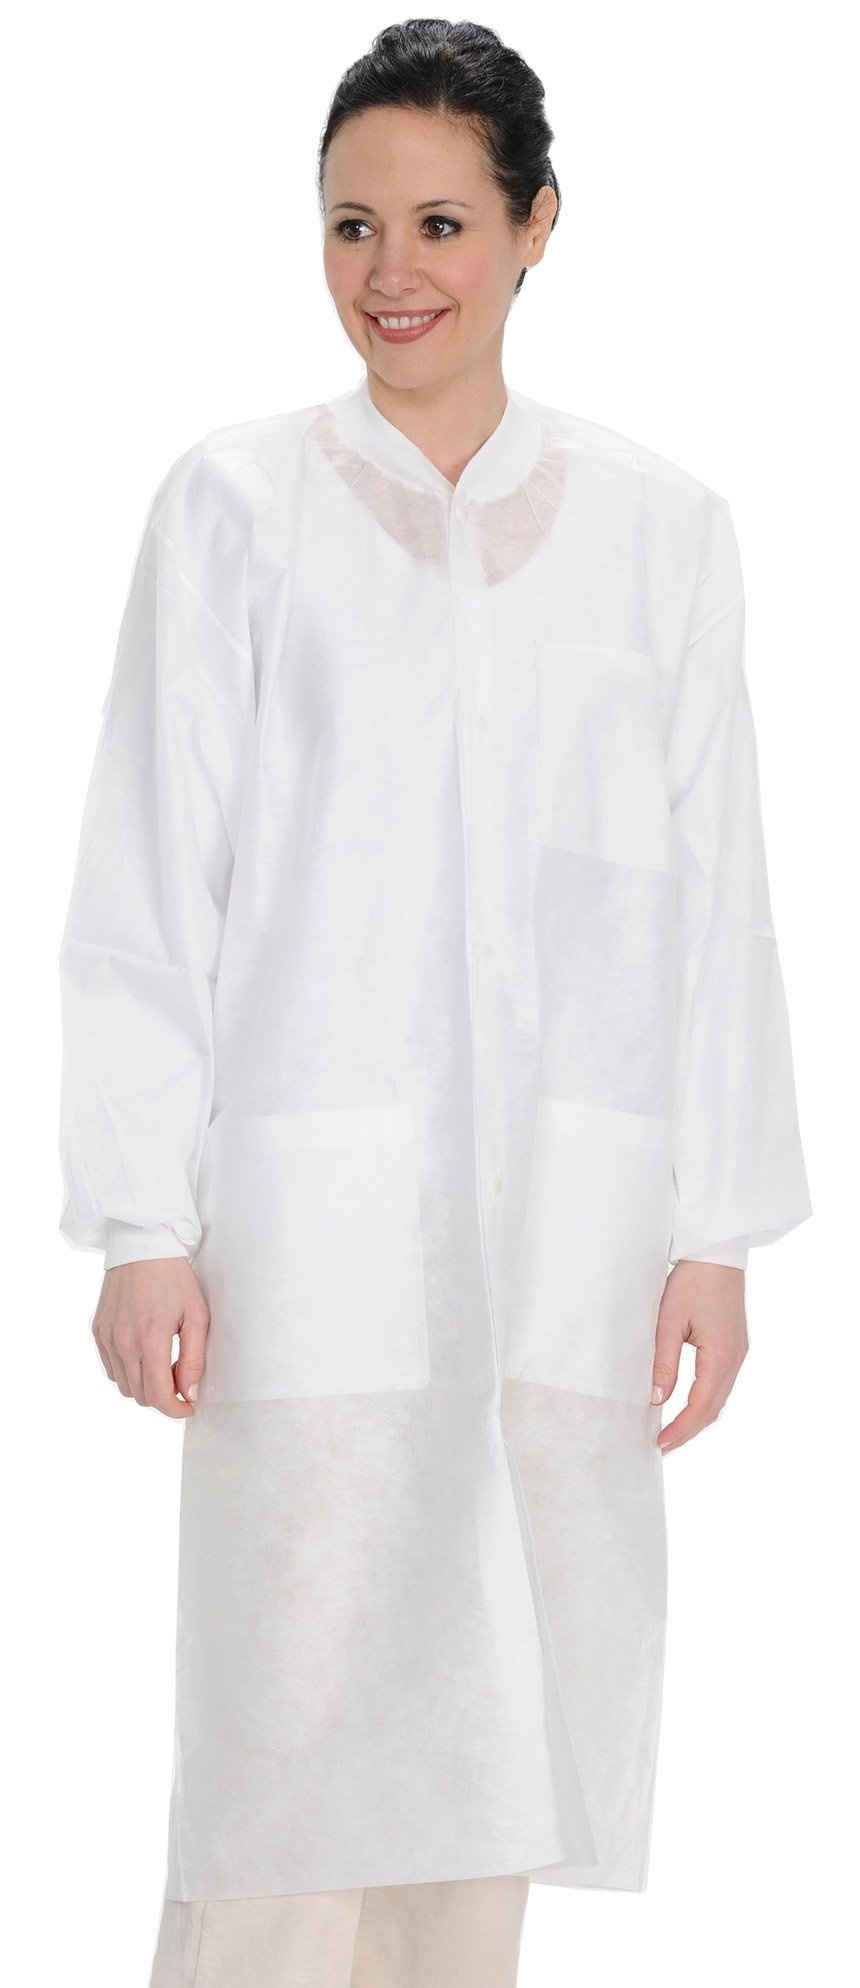 ValuMax 3560WHS Easy Breathe Cool and Strong, No-Wrinkle, Professional Disposable SMS Knee Length Lab Coat, White, S, Pack of 10